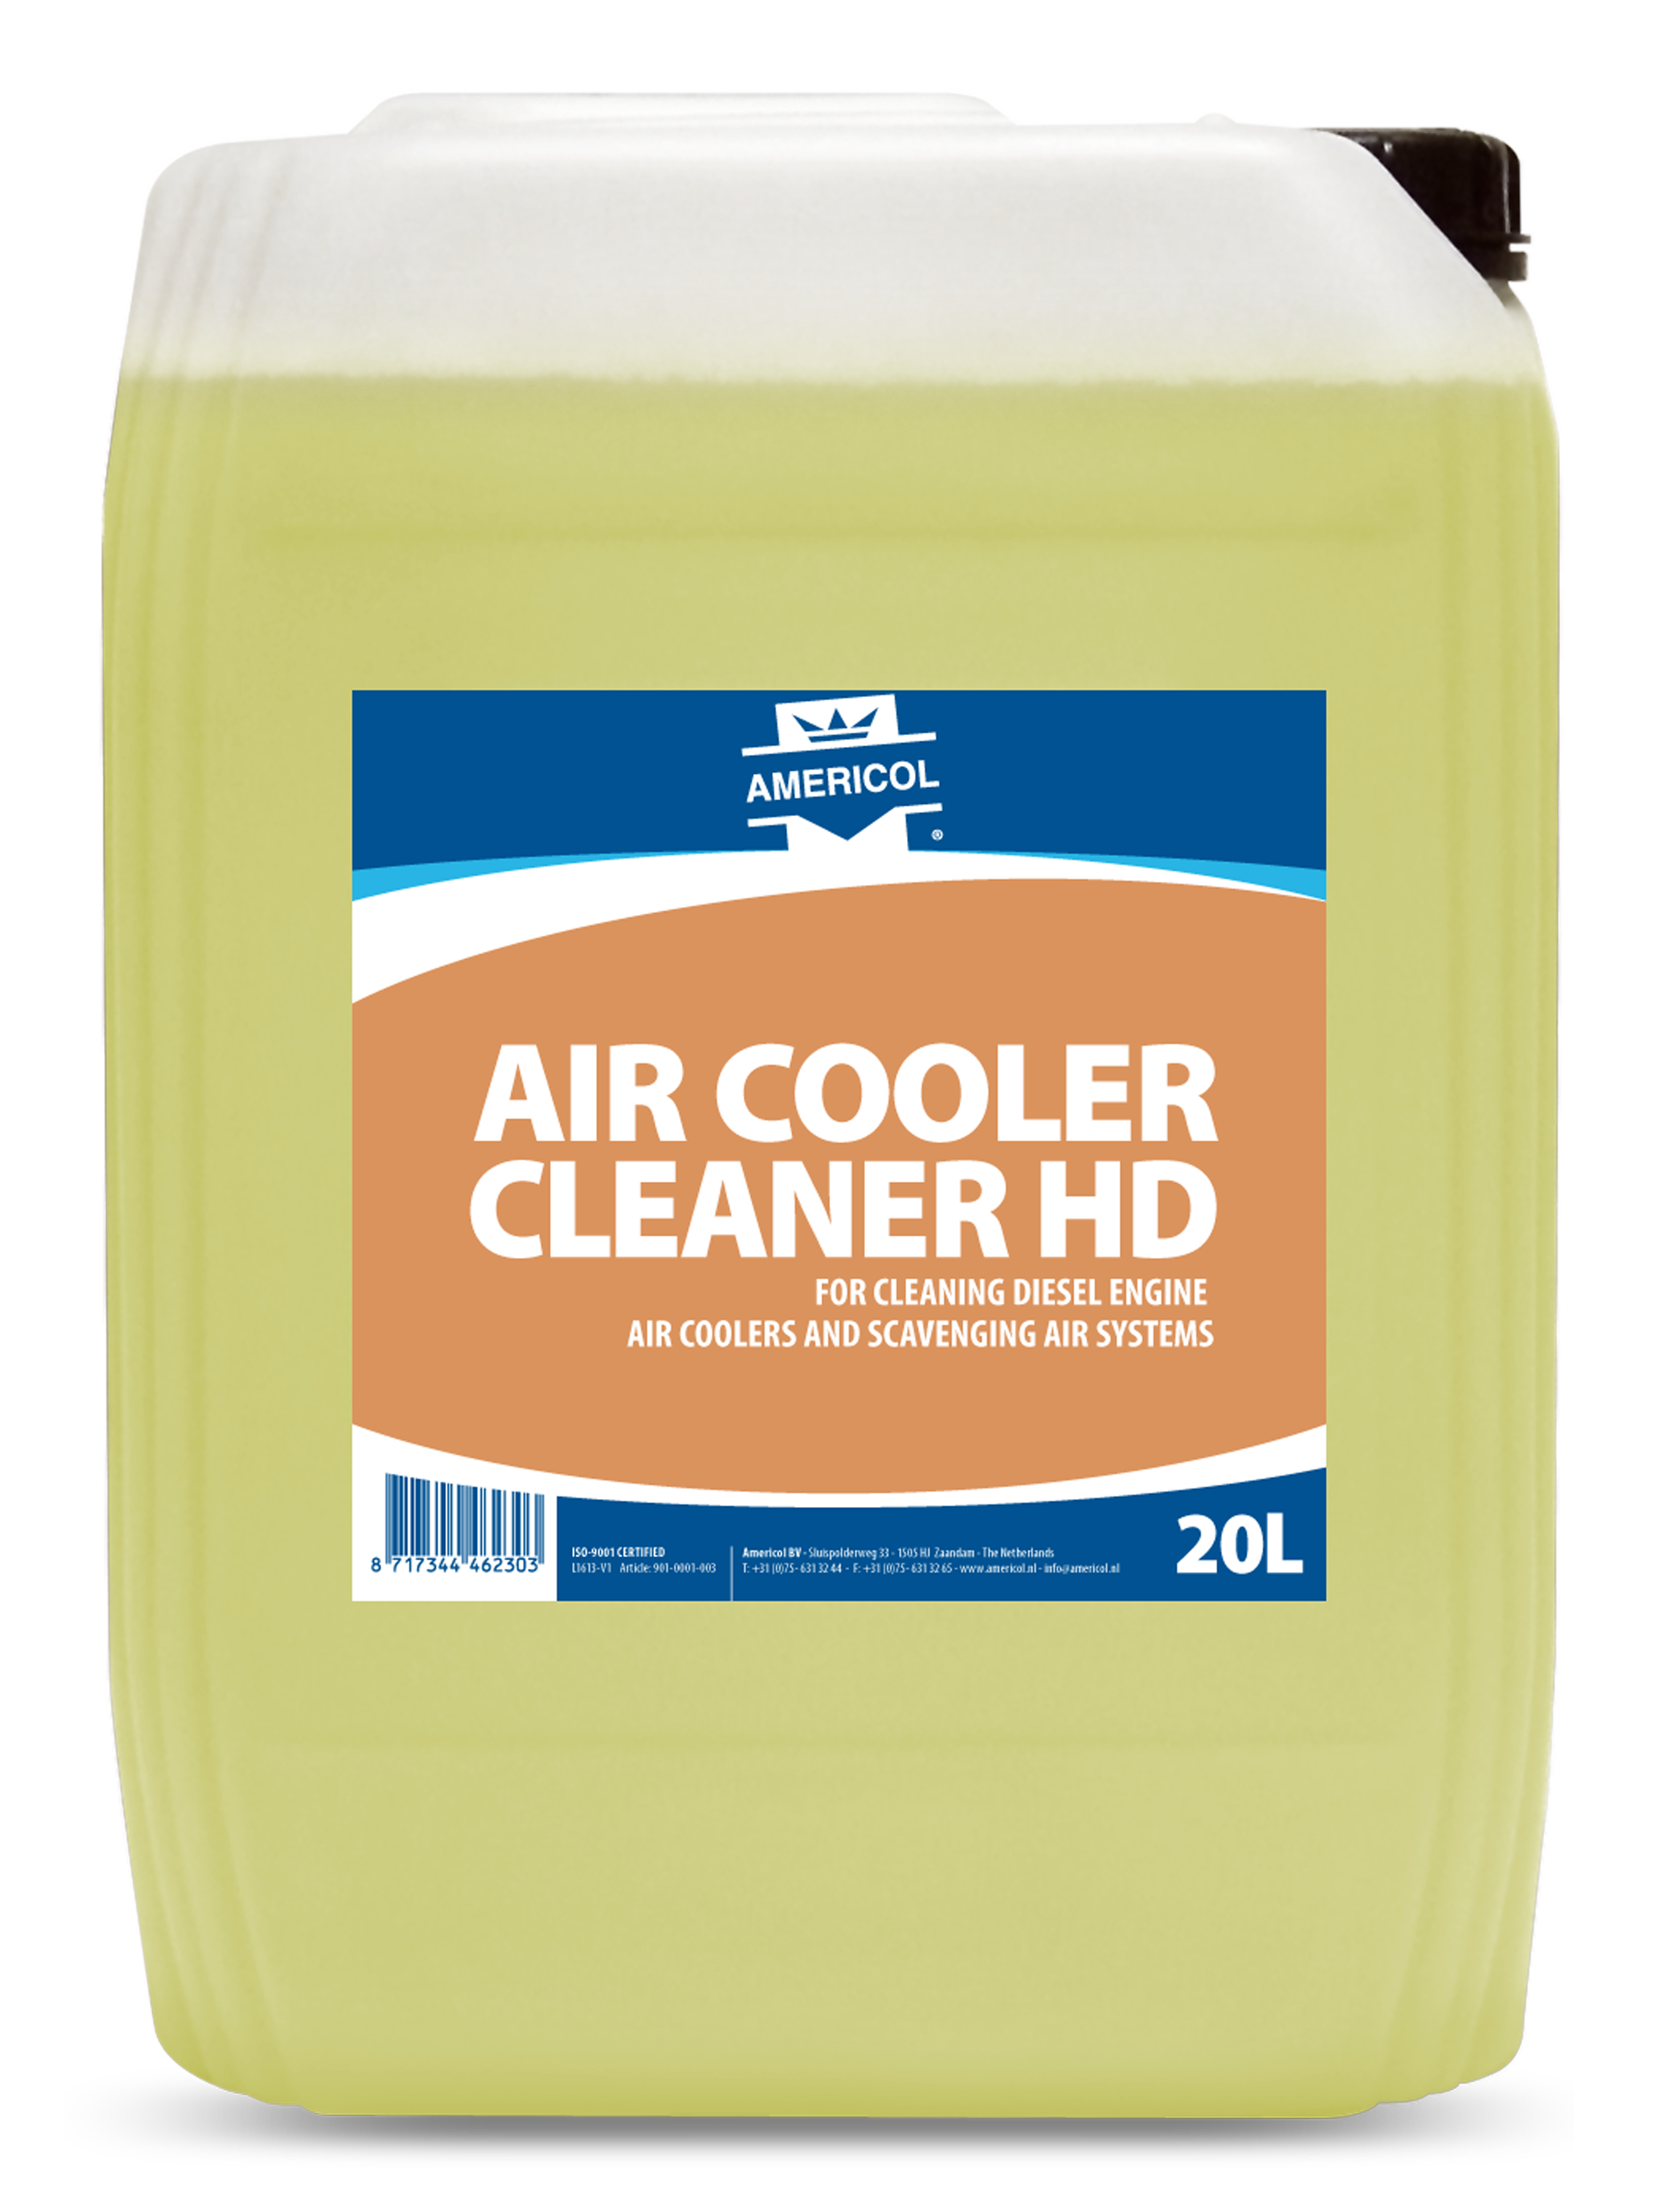 Air Cooler Cleaner HD 20ltr